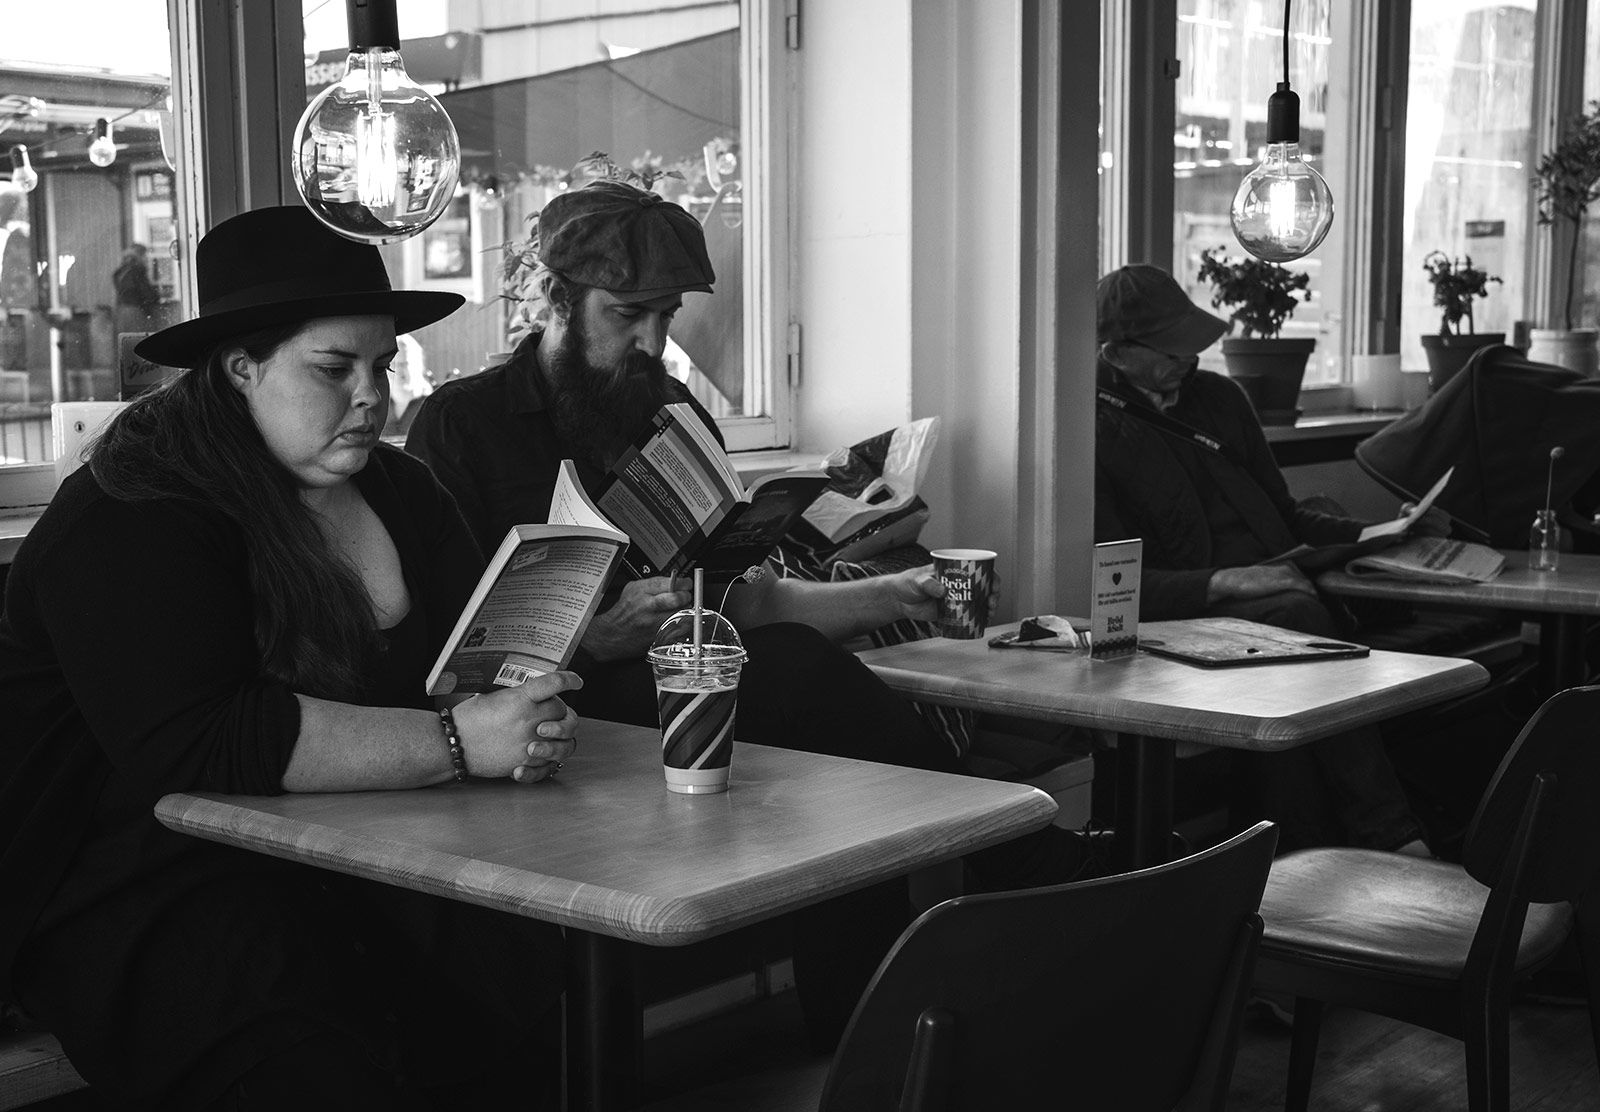 People reading in cafe